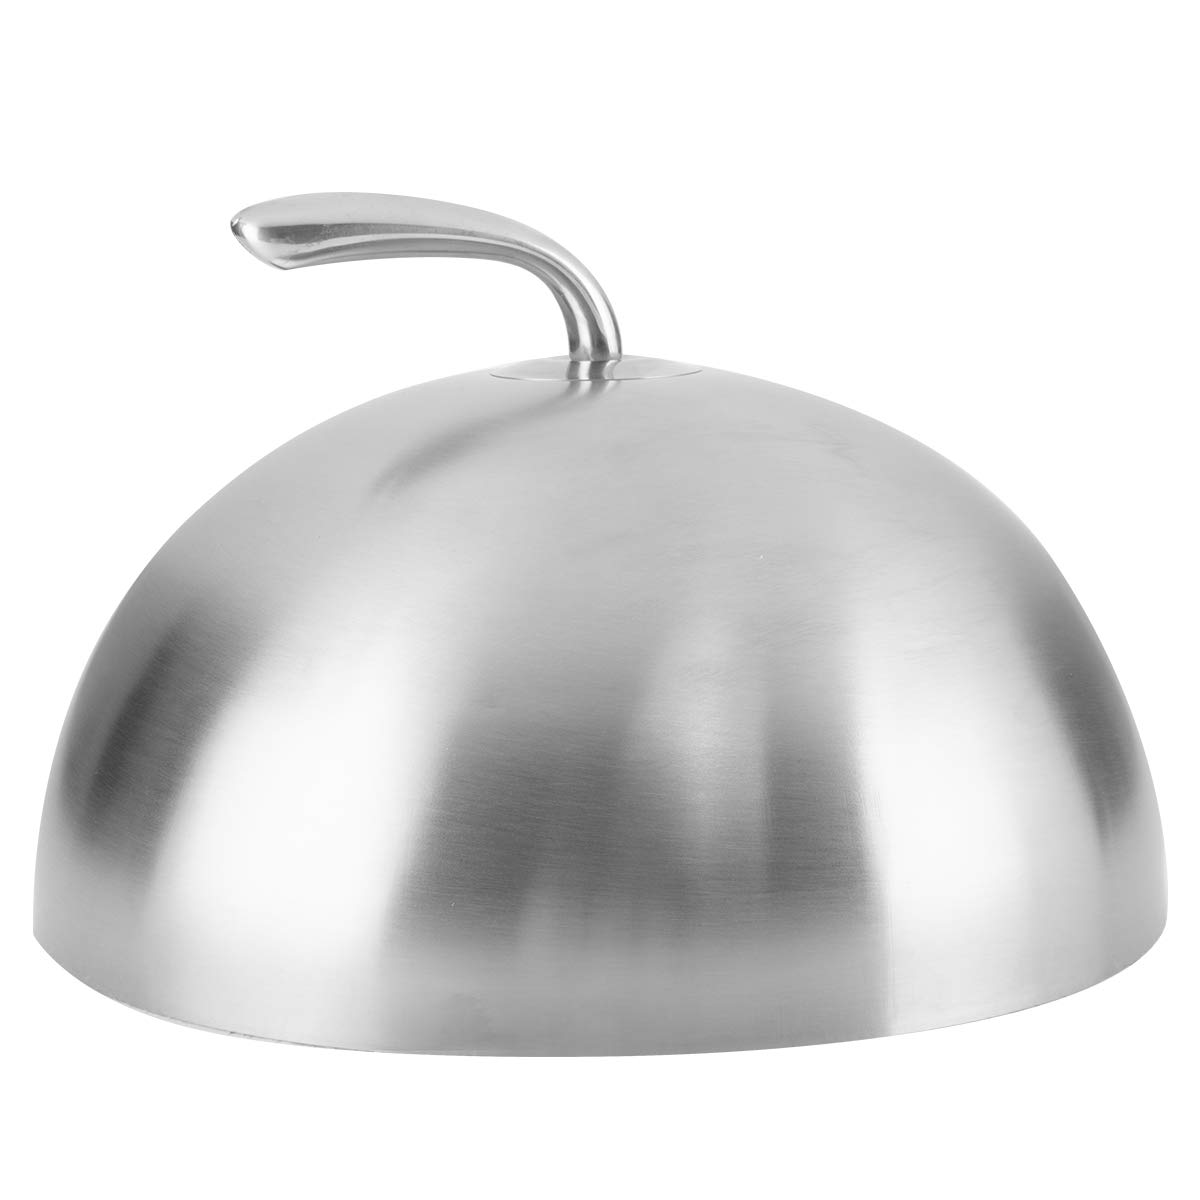 """onlyfire 11"""" Stainless Steel Steaming Cover Serving Food Cover with Handle for Kicthen, Griddle, Parties Cooking Indoor or Outdoor 51B3KKt62BIL"""